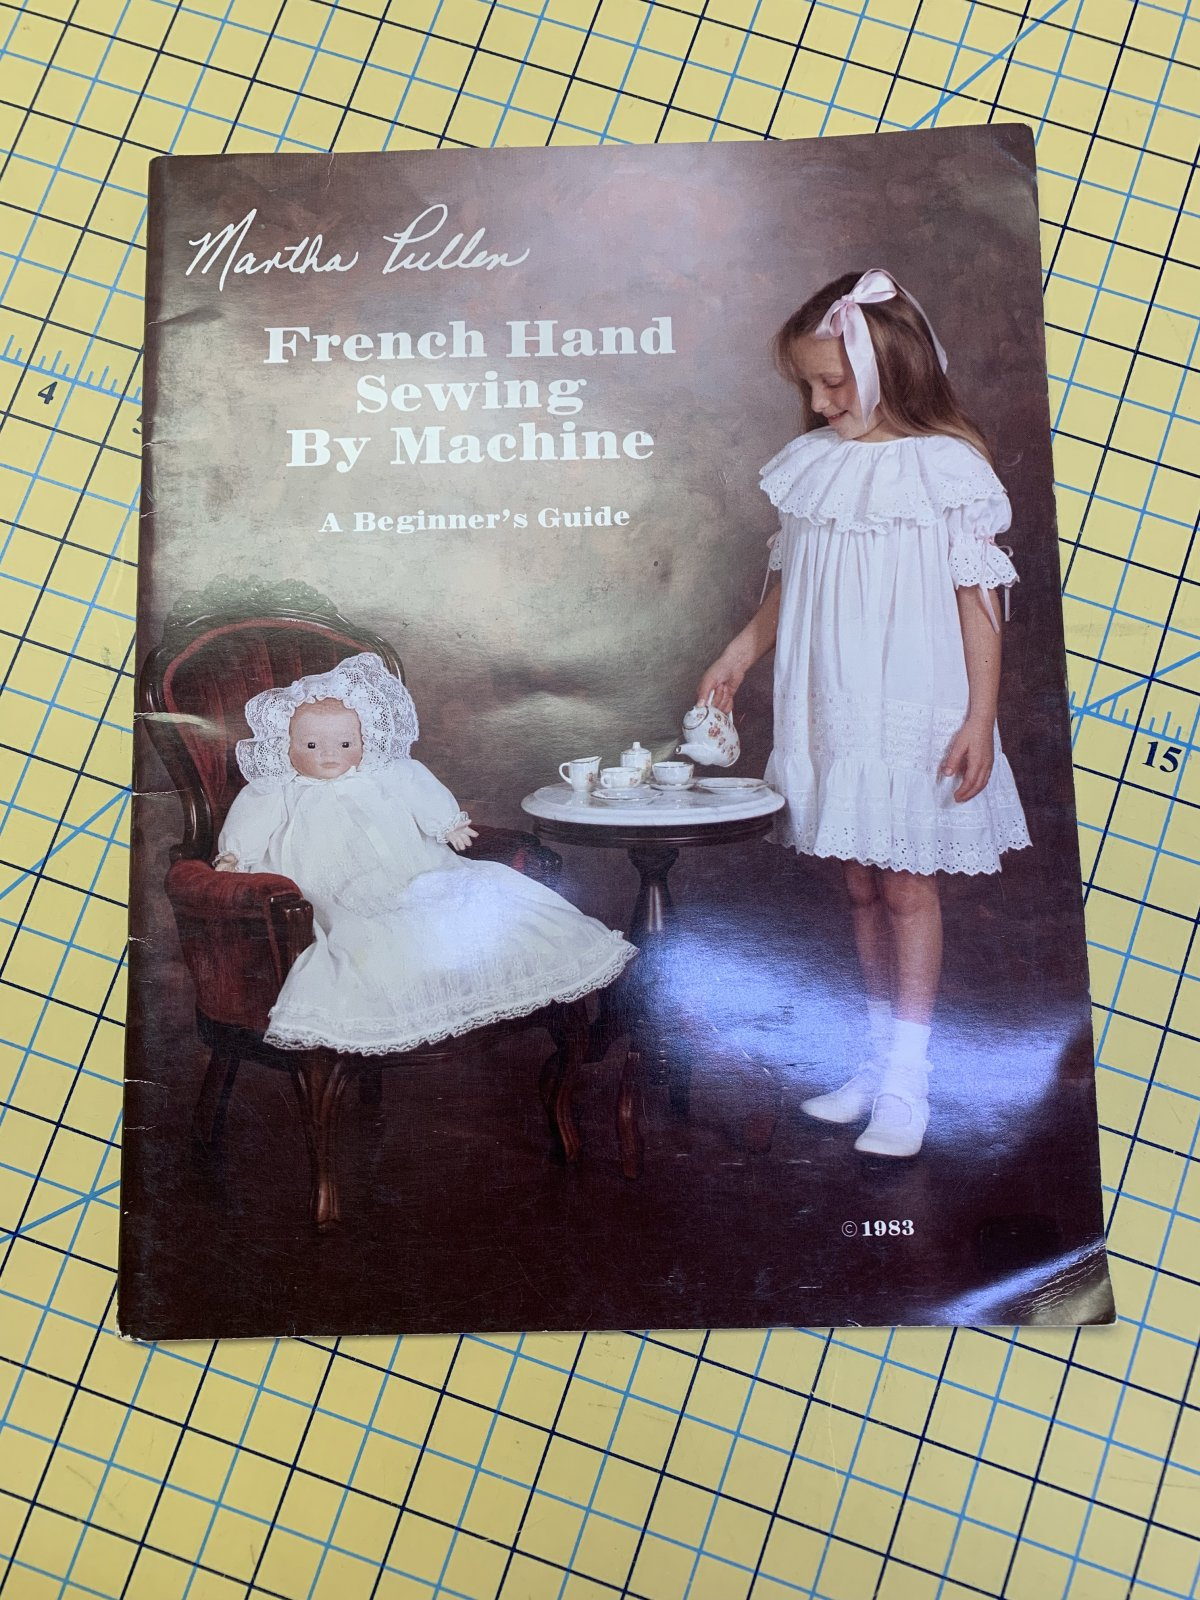 French Handsewing by Machine - Martha Pullen (Previously Loved) Beginner's Book